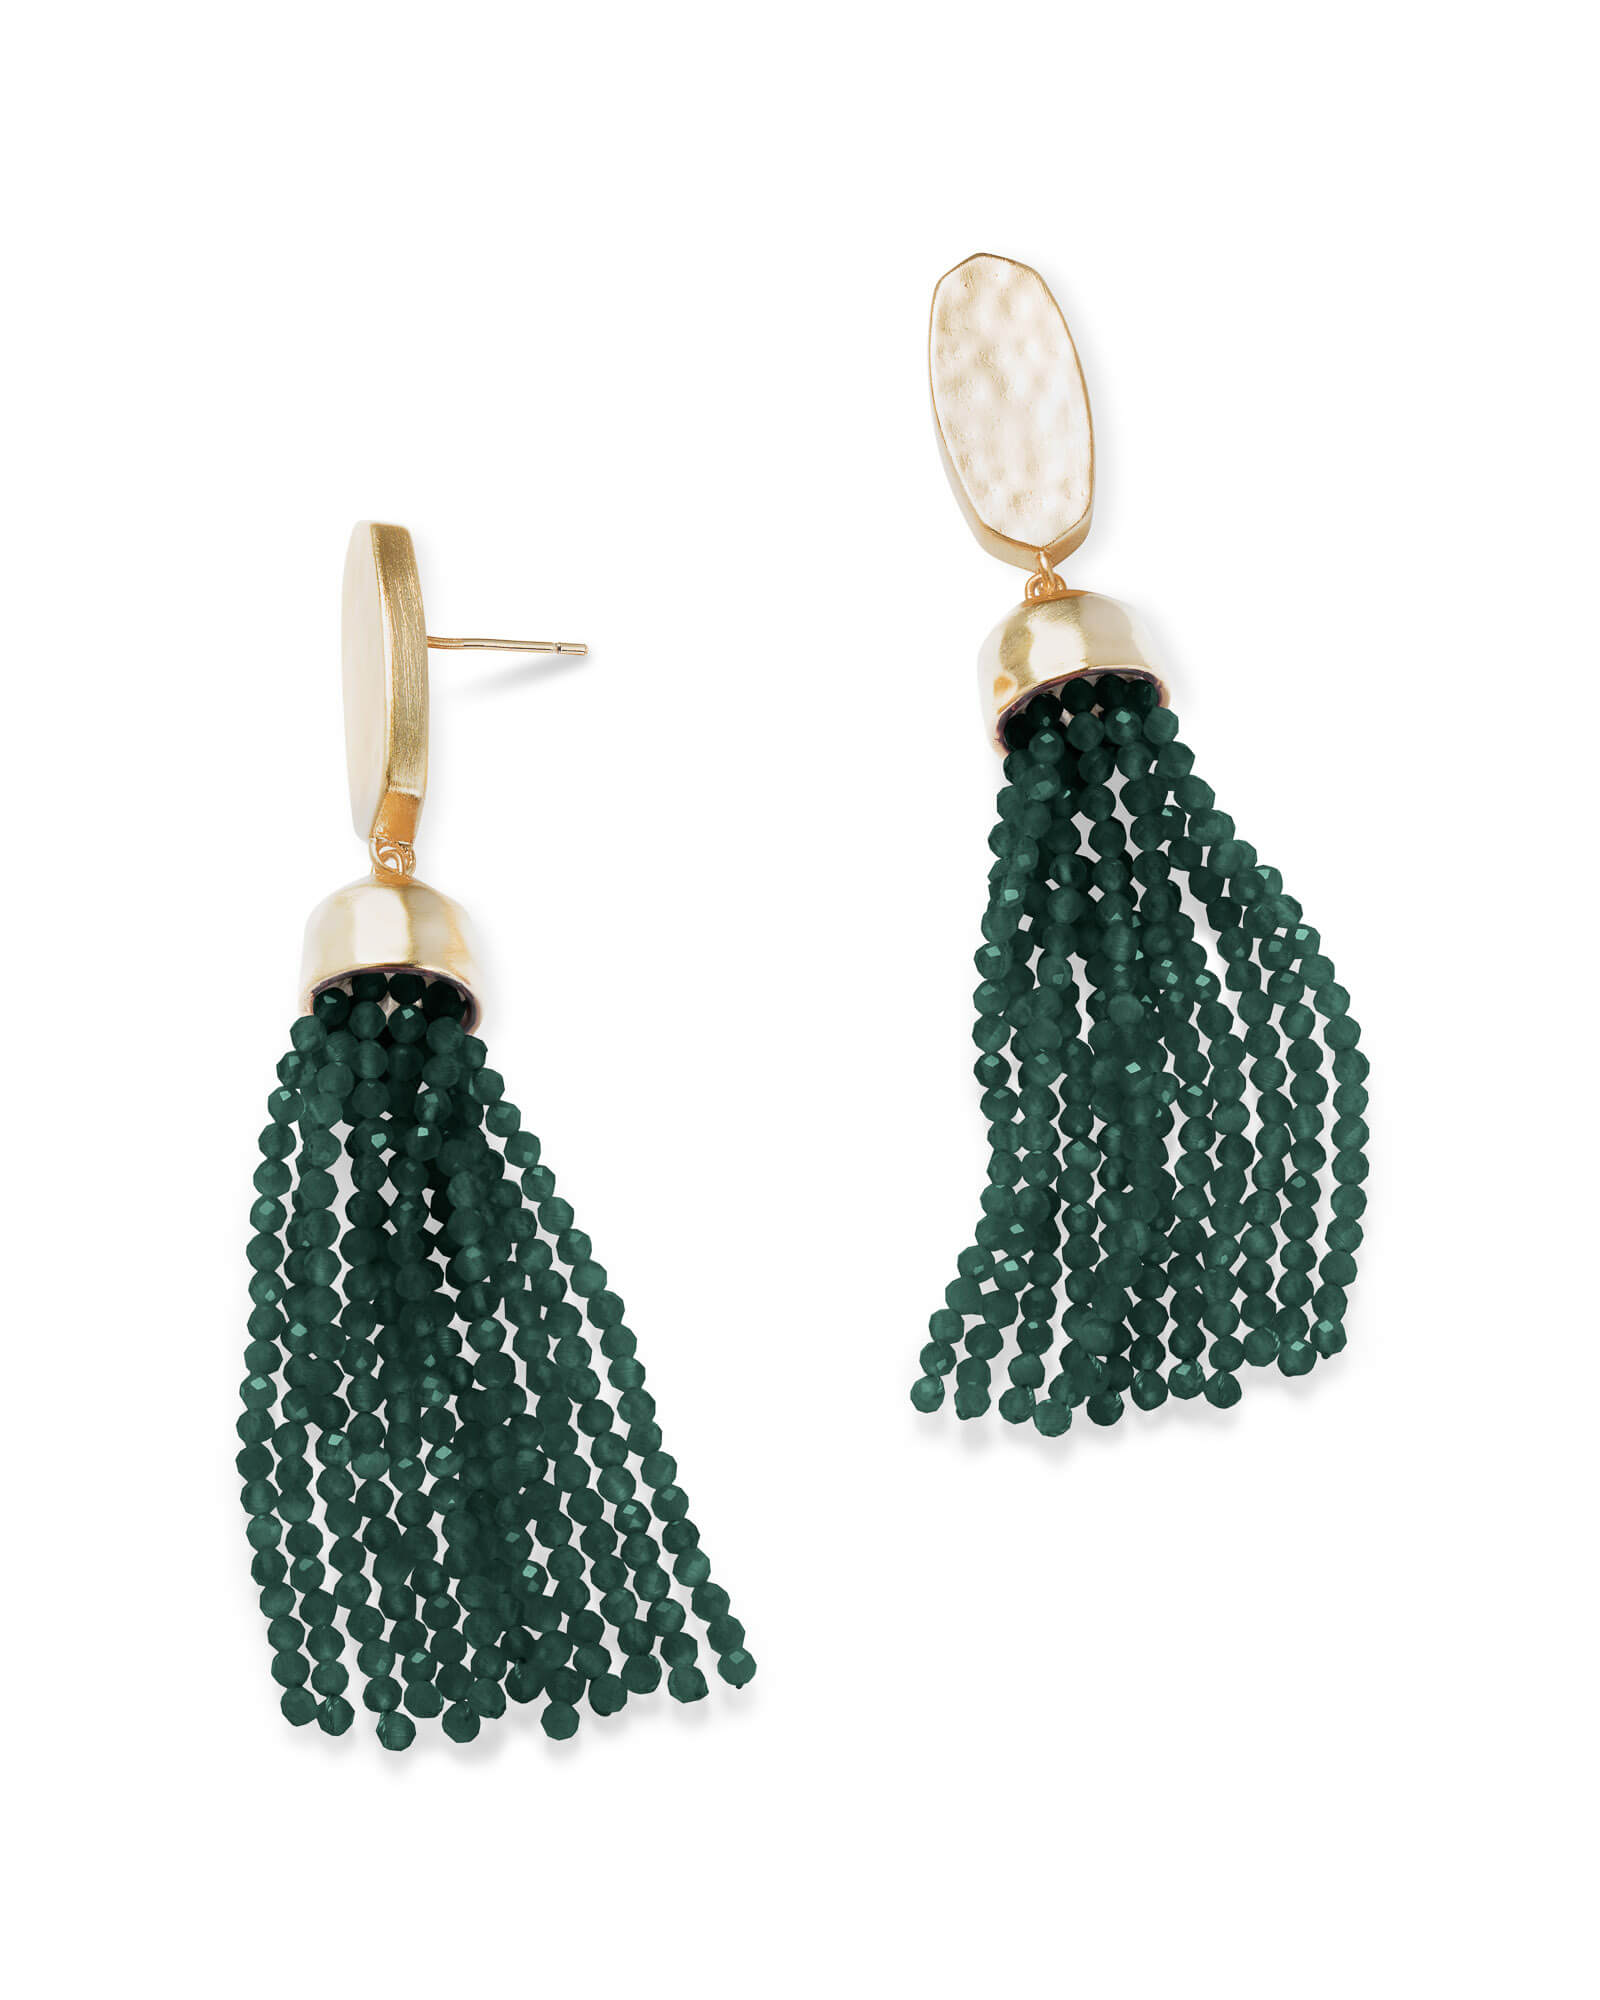 Marin Gold Statement Earrings in Emerald Cats Eye